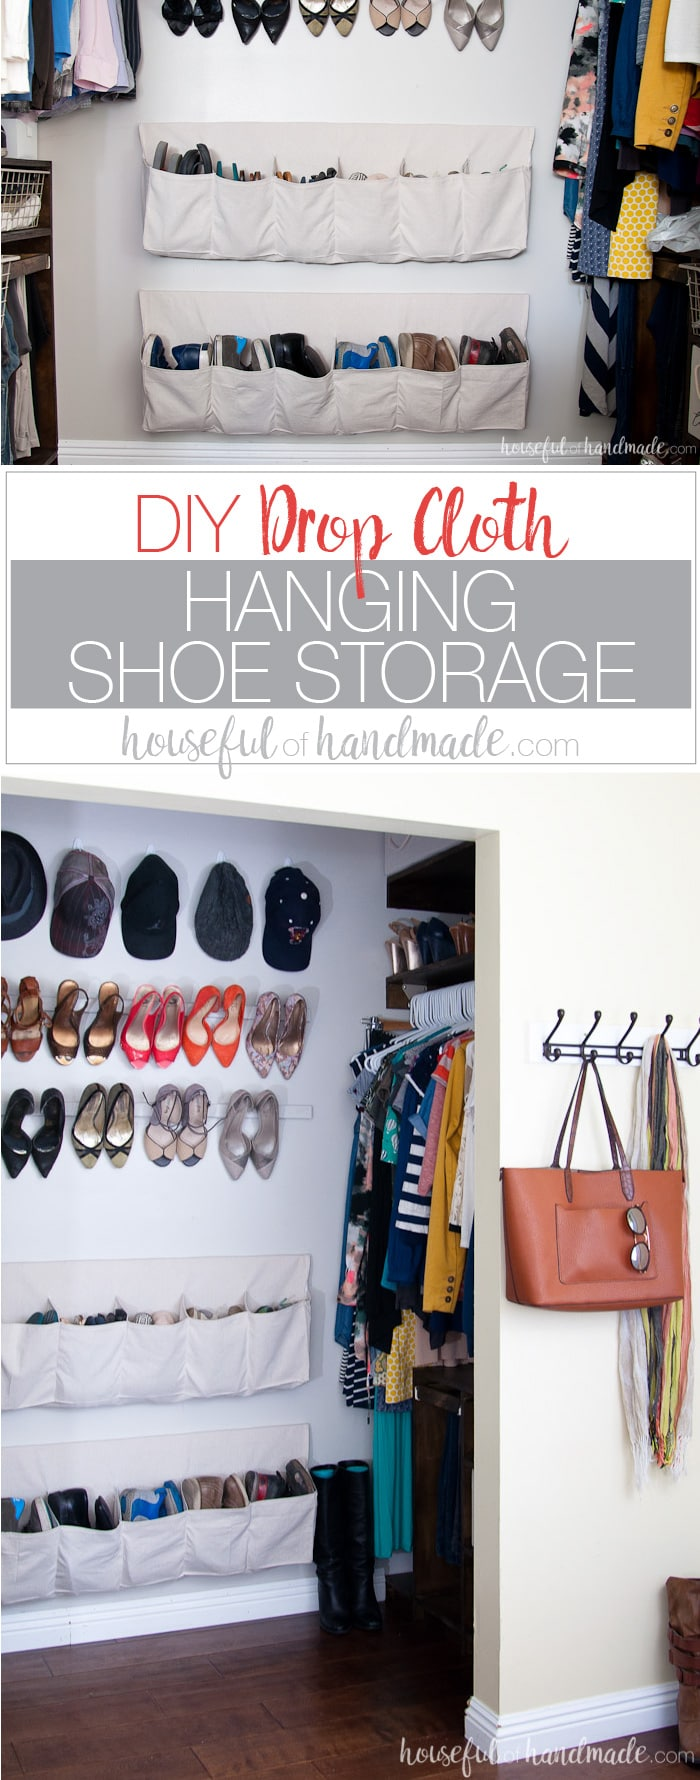 This drop cloth hanging shoe storage will keep your closet clean and all your shoes organized. The hanging shoe storage can easily be customized to fit all your shoes and closet space. See how easy they were to make for just a few dollars. Housefulofhandmade.com